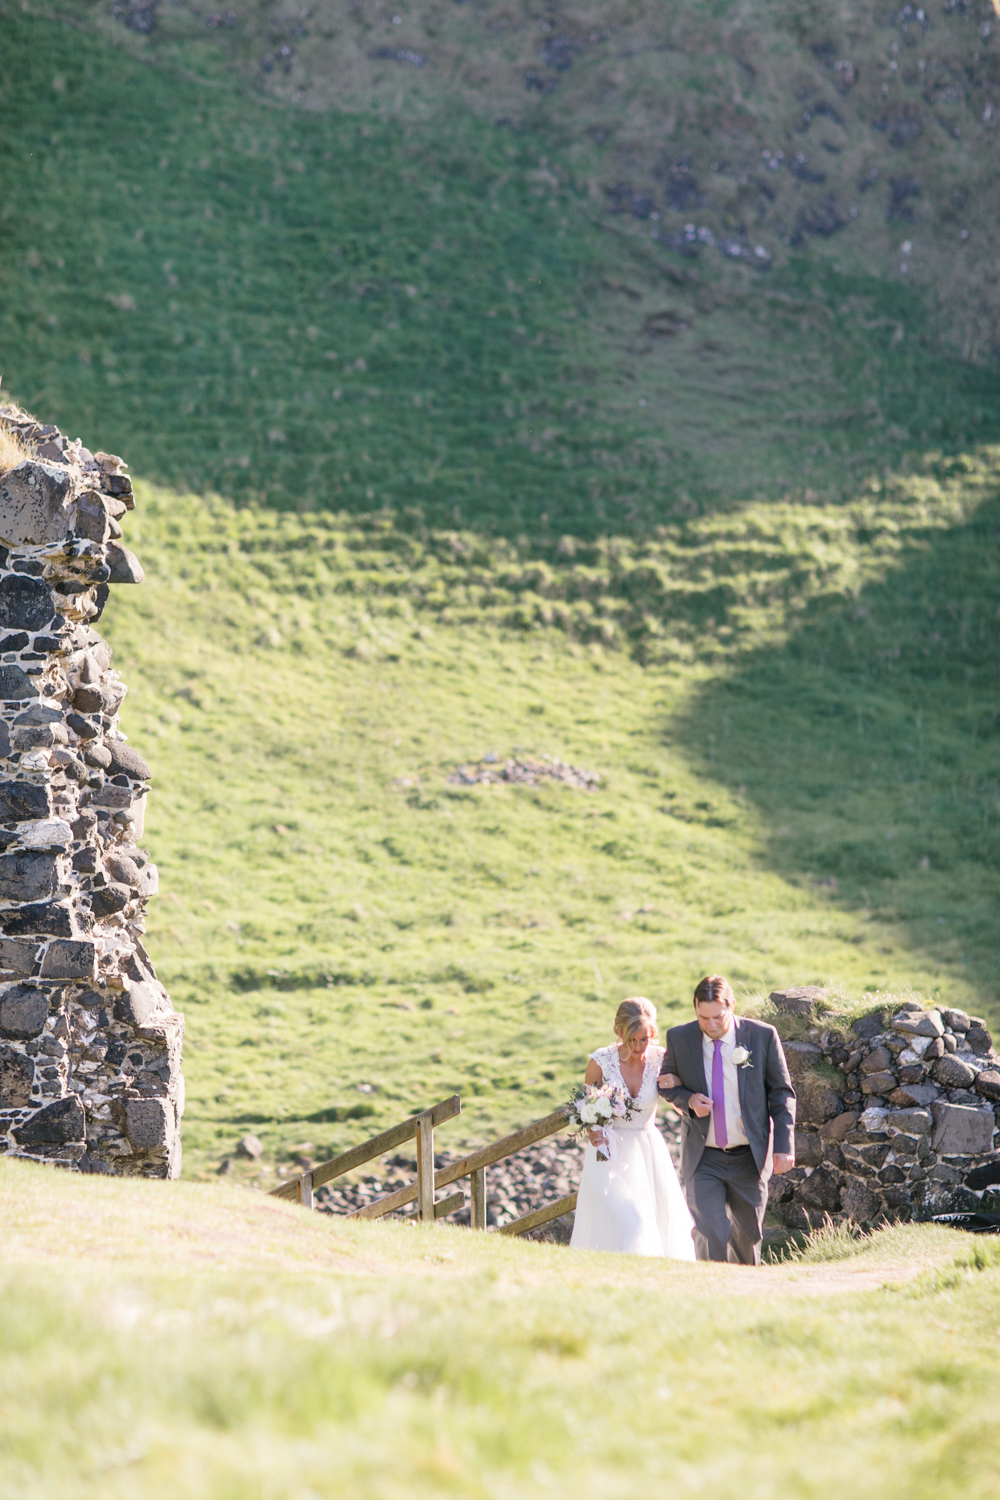 bride going up the hill to begin the wedding ceremony in kinbane castle in northern ireland